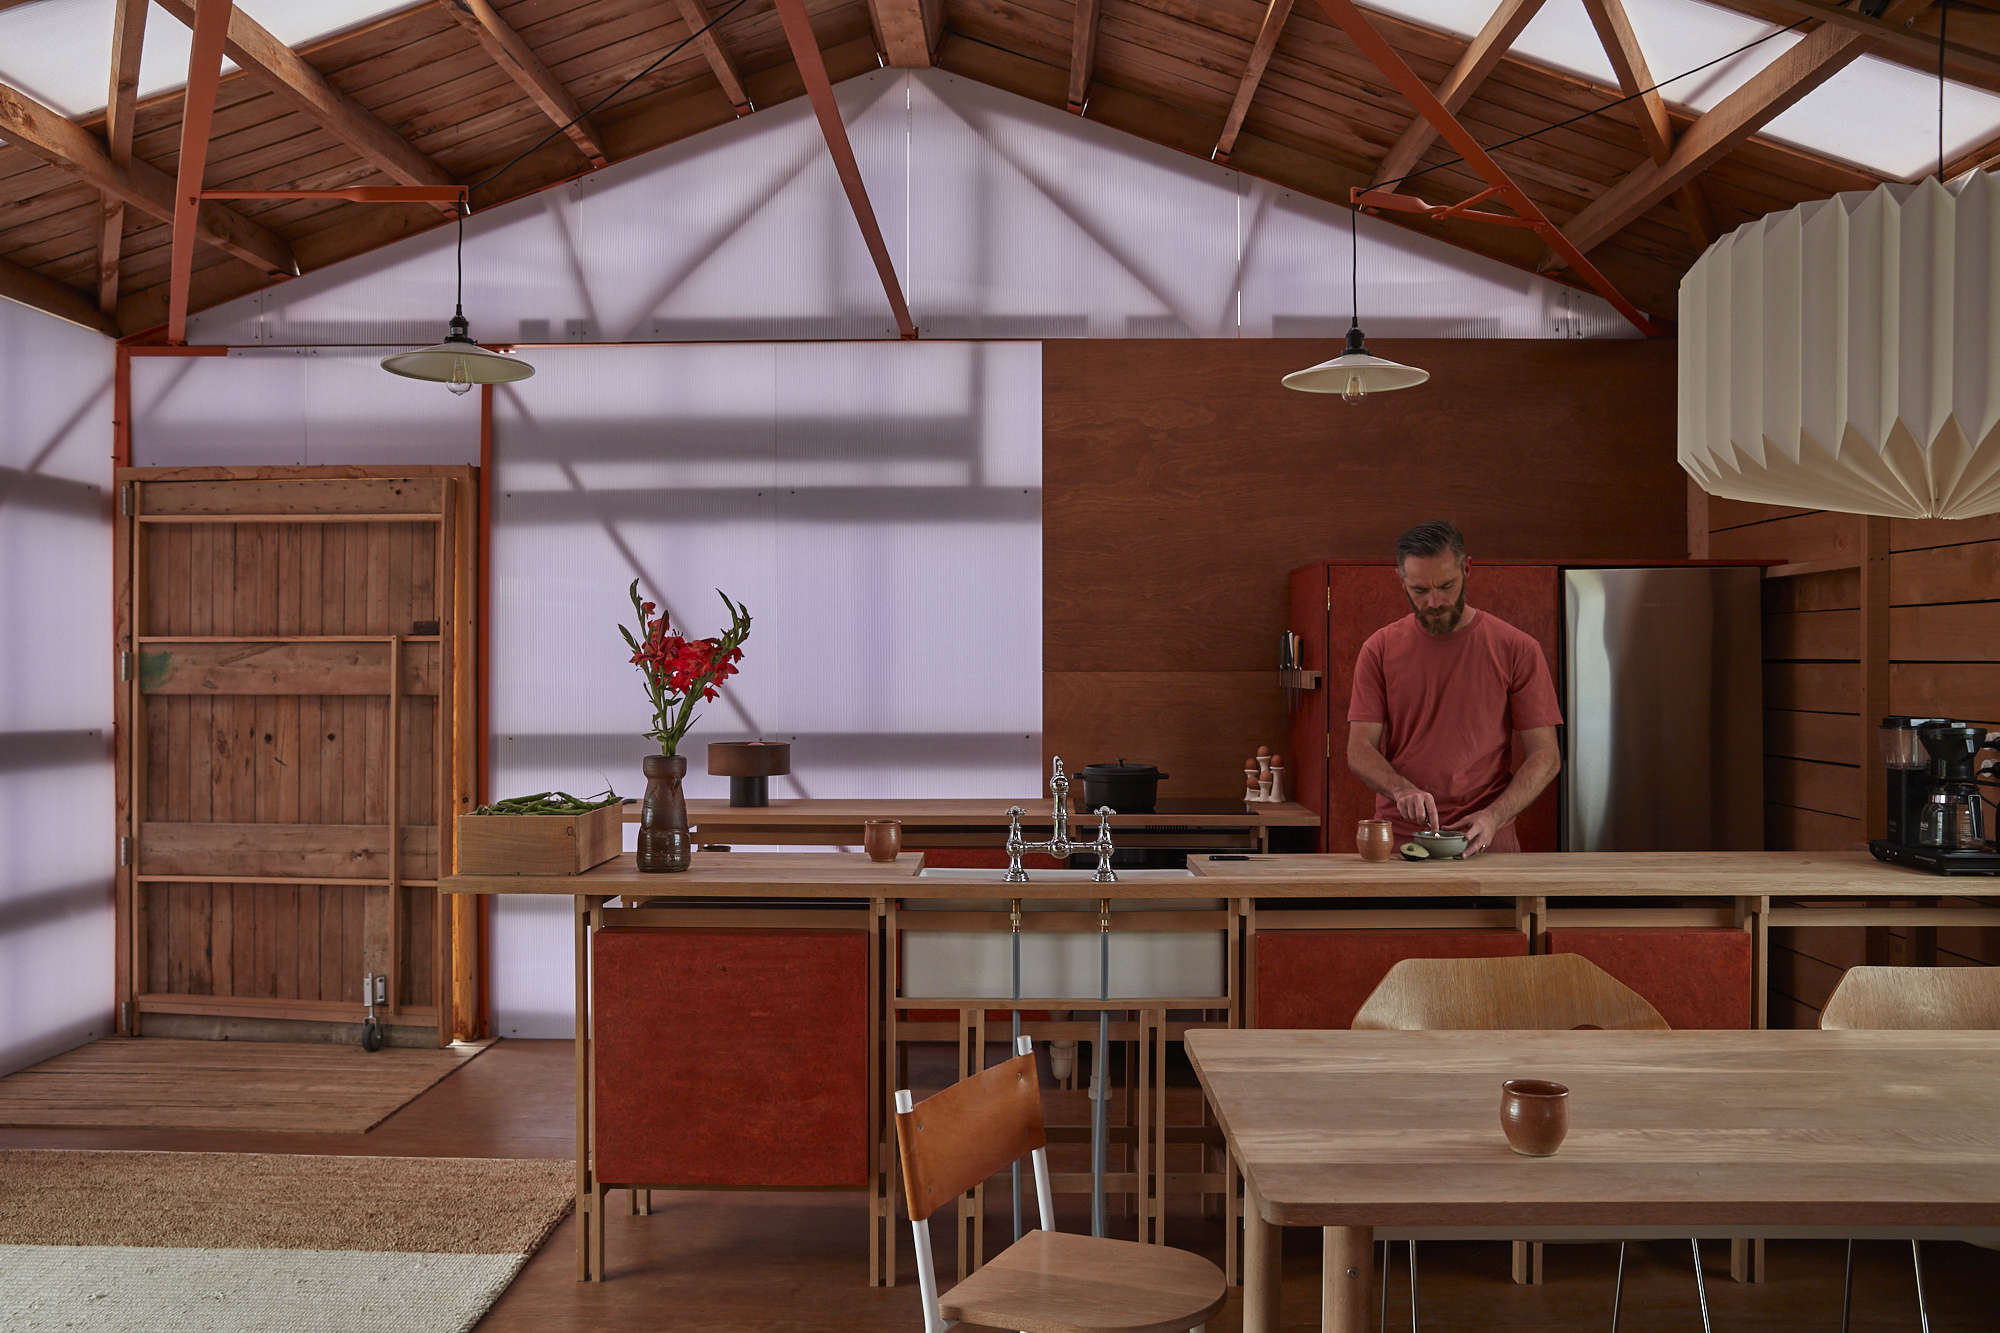 Modern Farm Style: Architect Ben Daly and Family Live in a Sheep Shed He Converted Himself